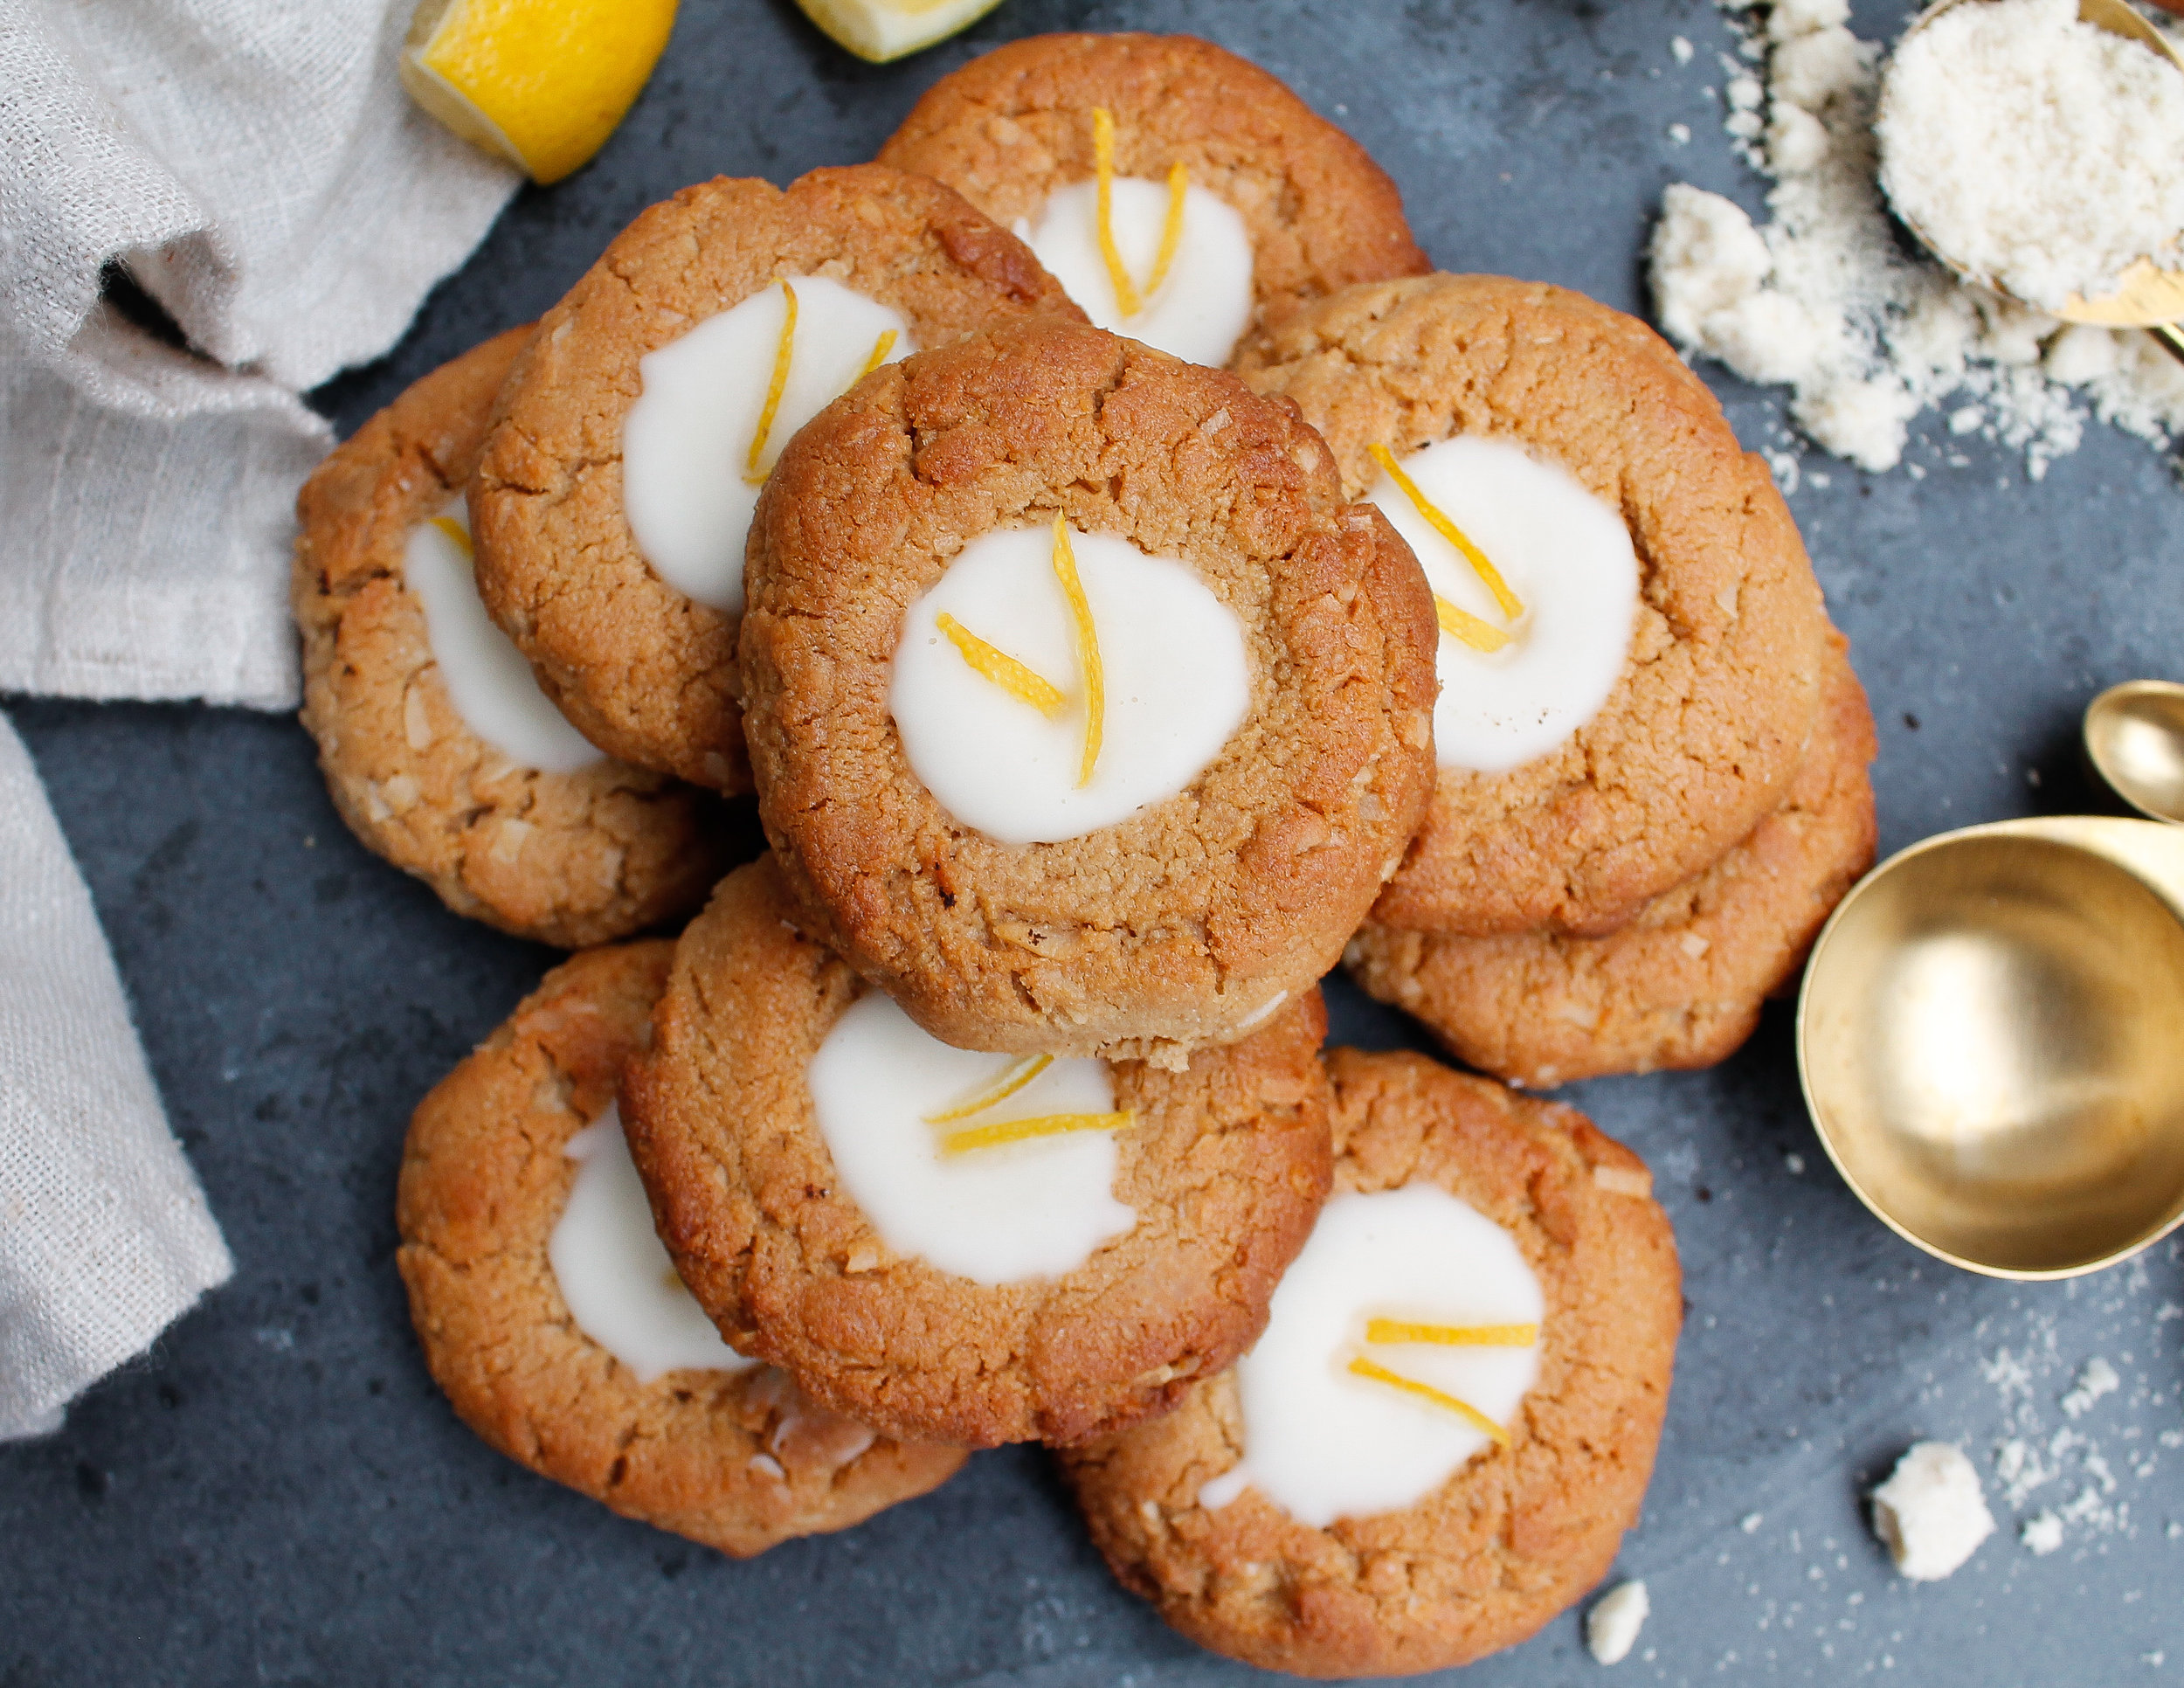 Paleo + Vegan Lemon Coconut Cookies || These paleo lemon coconut cookies satisfy your sweet tooth AND nourish your body! They're grain free, gluten free, dairy free, vegan, refined sugar free AND Specific Carbohydrate Diet friendly! They're rich, yet refreshing with the delicious lemon flavor and creamy coconut butter thumbprint filling. The perfect healthy summer snack or healthy summer sweet treat! || #scddiet #specificcarbohydratediet #paleocookiedough